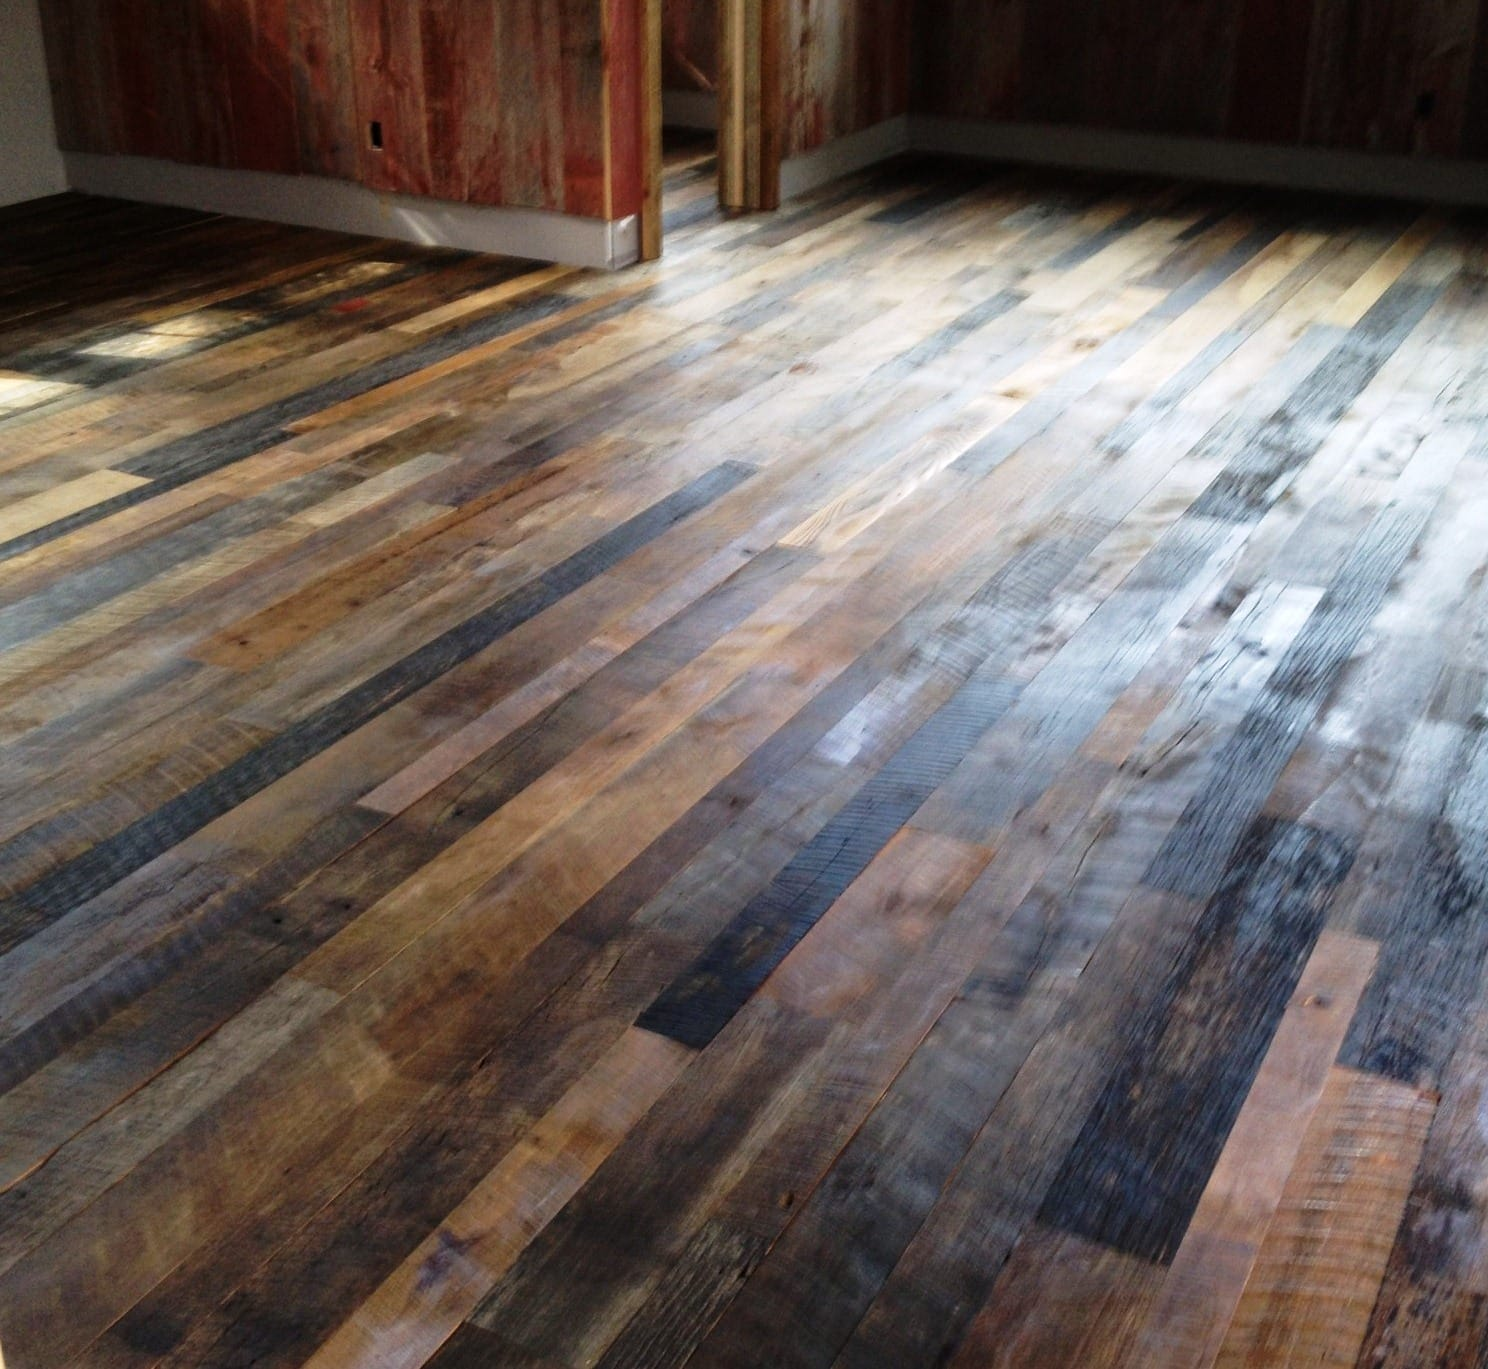 Floor360 recycled repurposed relocated for Reclaimed hardwood flooring